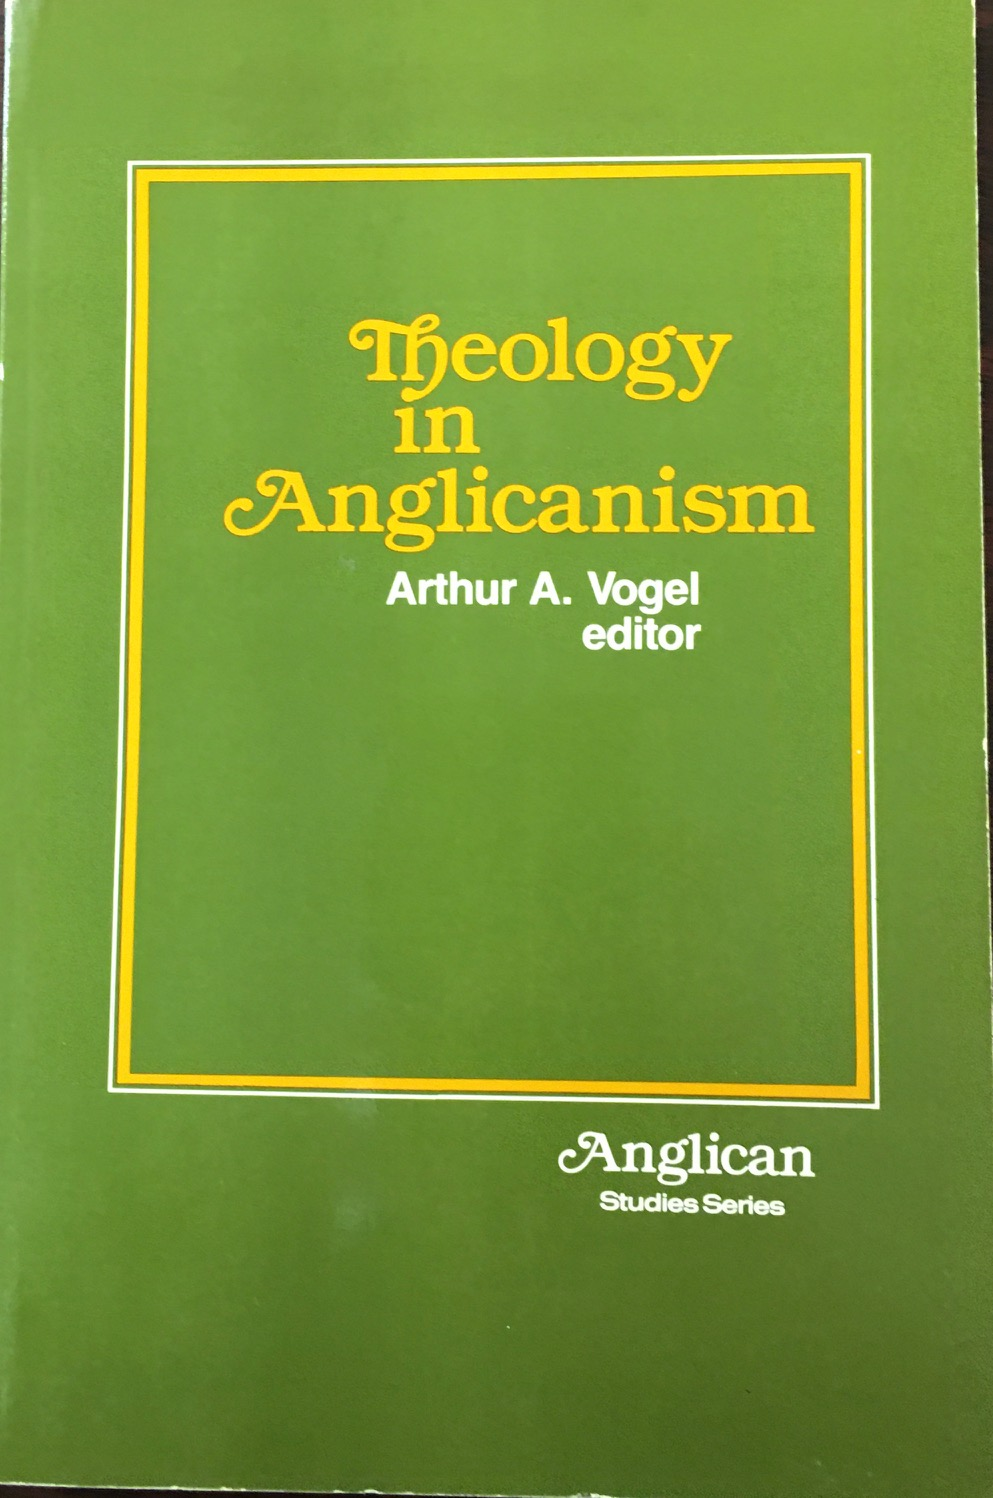 Image for Theology in Anglicanism (Anglican Studies Series)